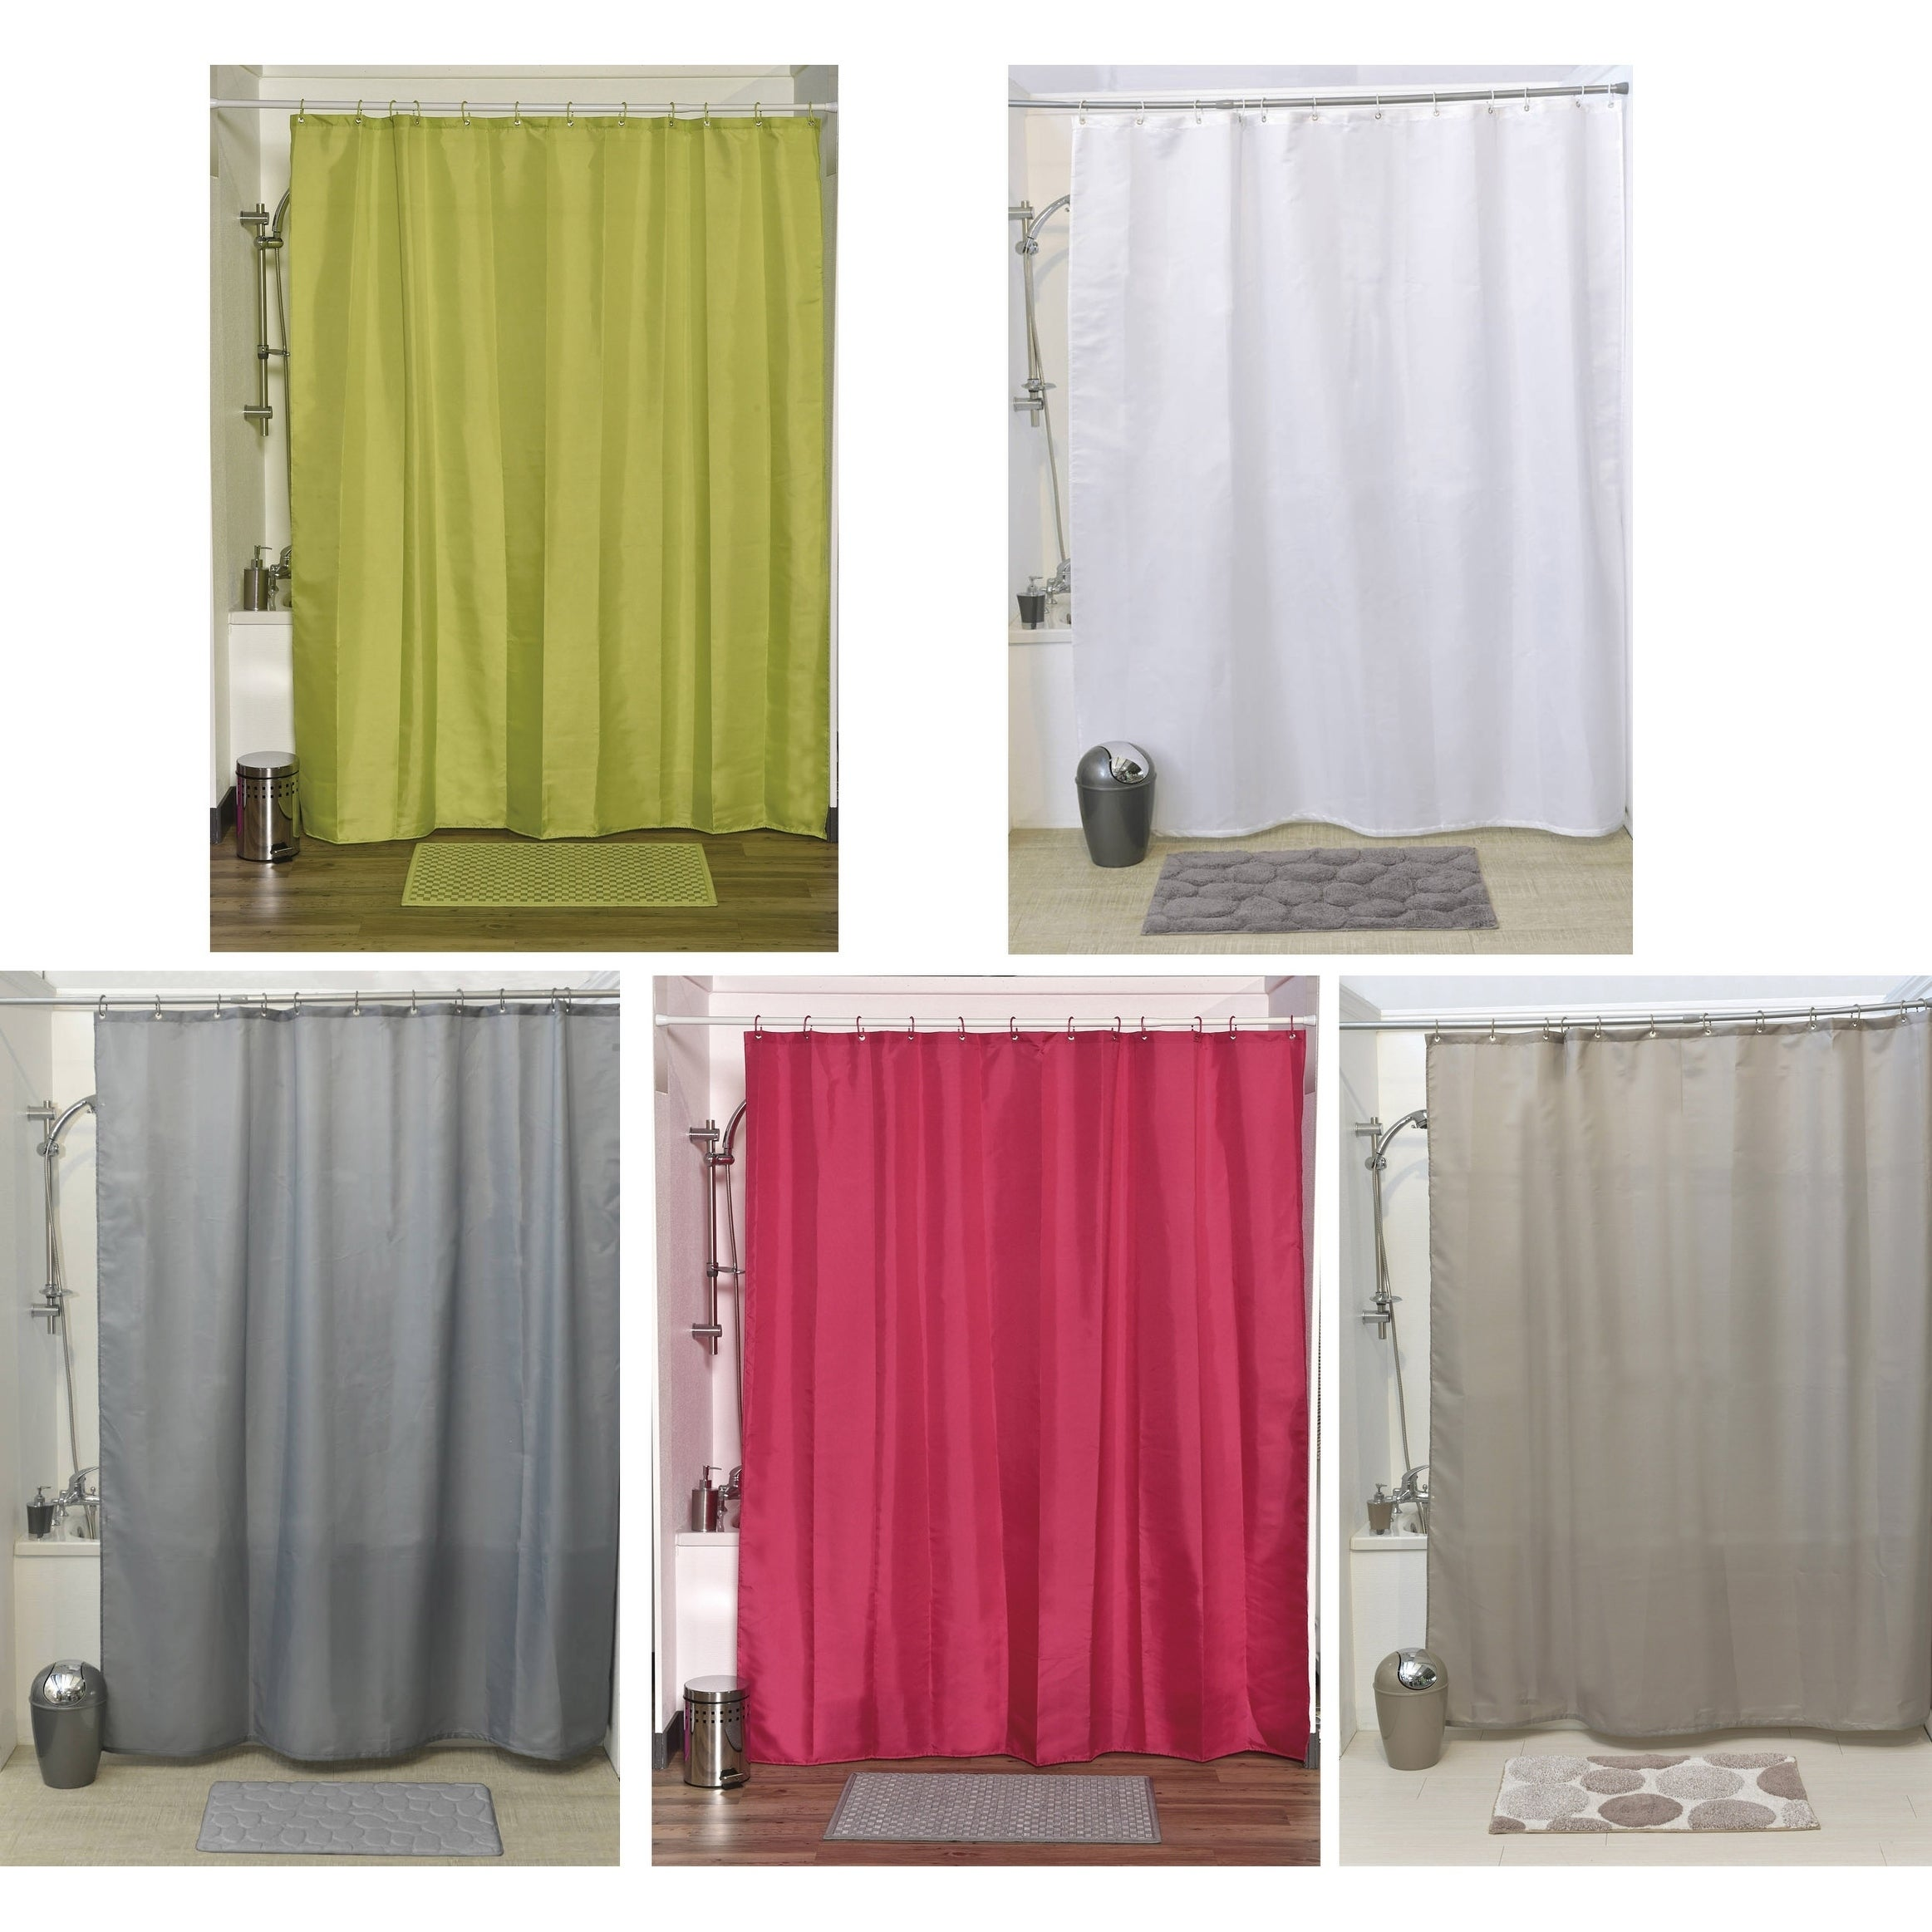 Shop Evideco Shower Curtain Fabric Polyester with 12 Color Matching ...